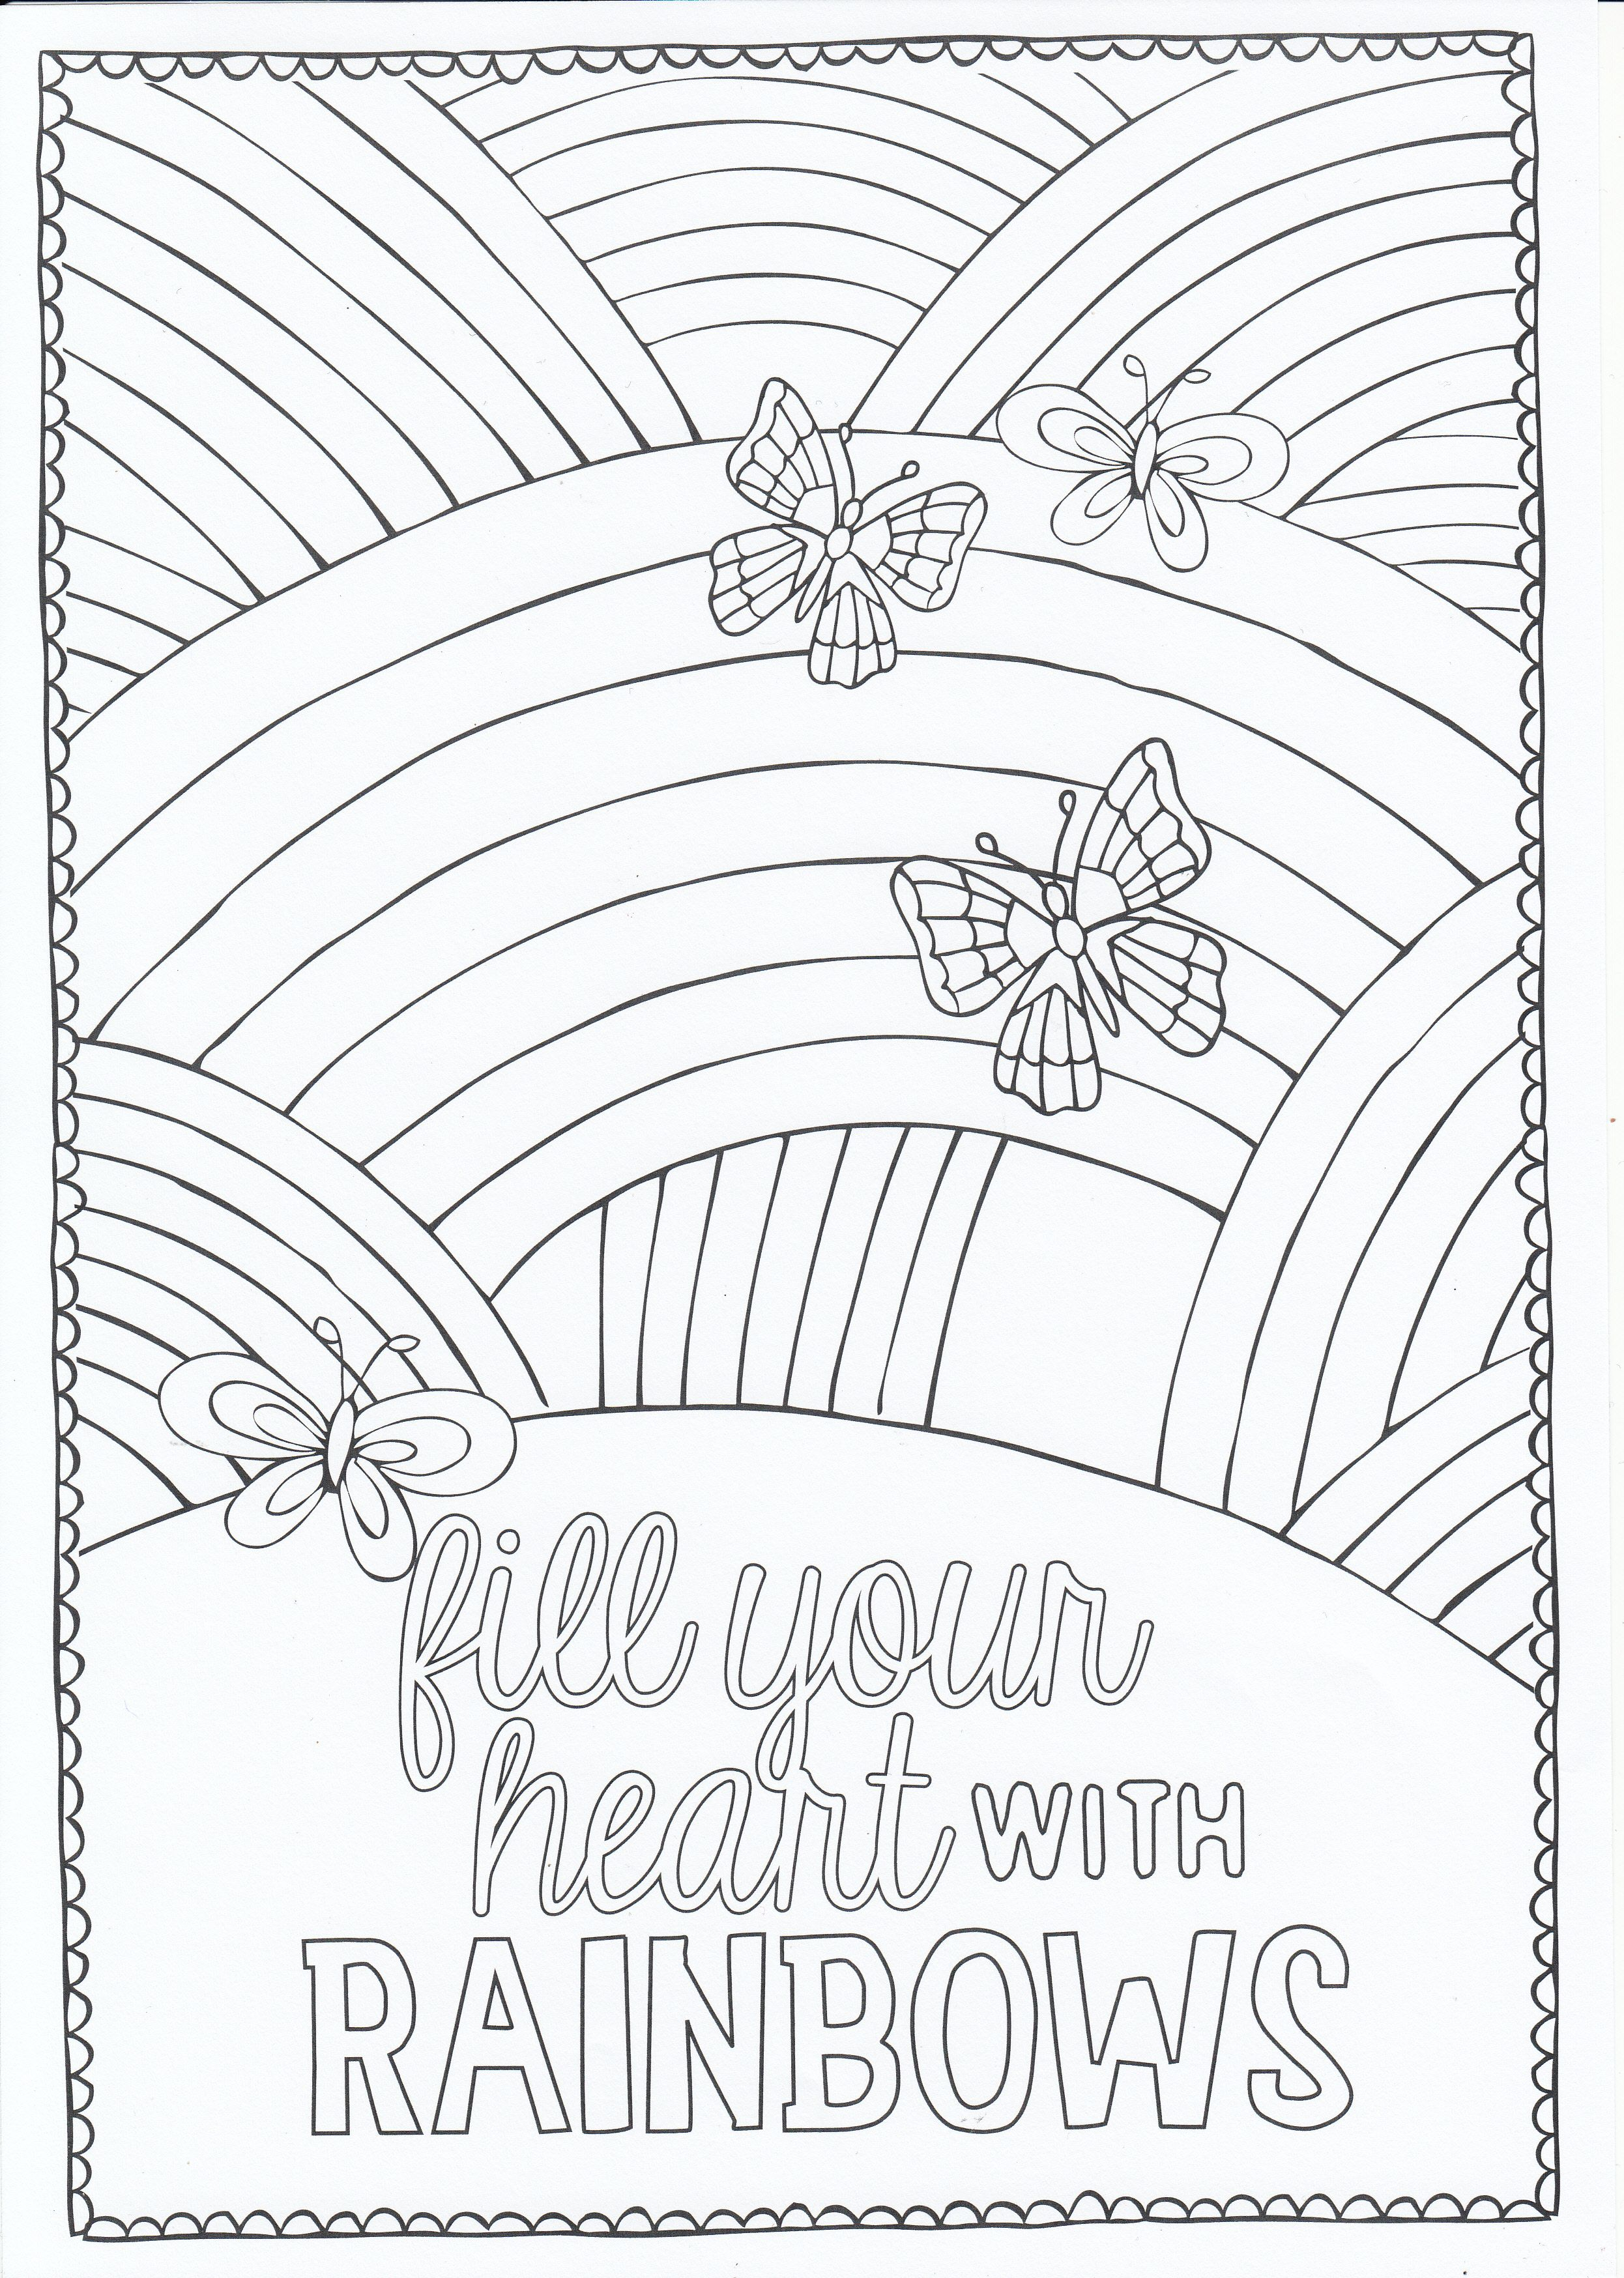 Rainbows Love Coloring Pages Fairy Coloring Pages Quote Coloring Pages